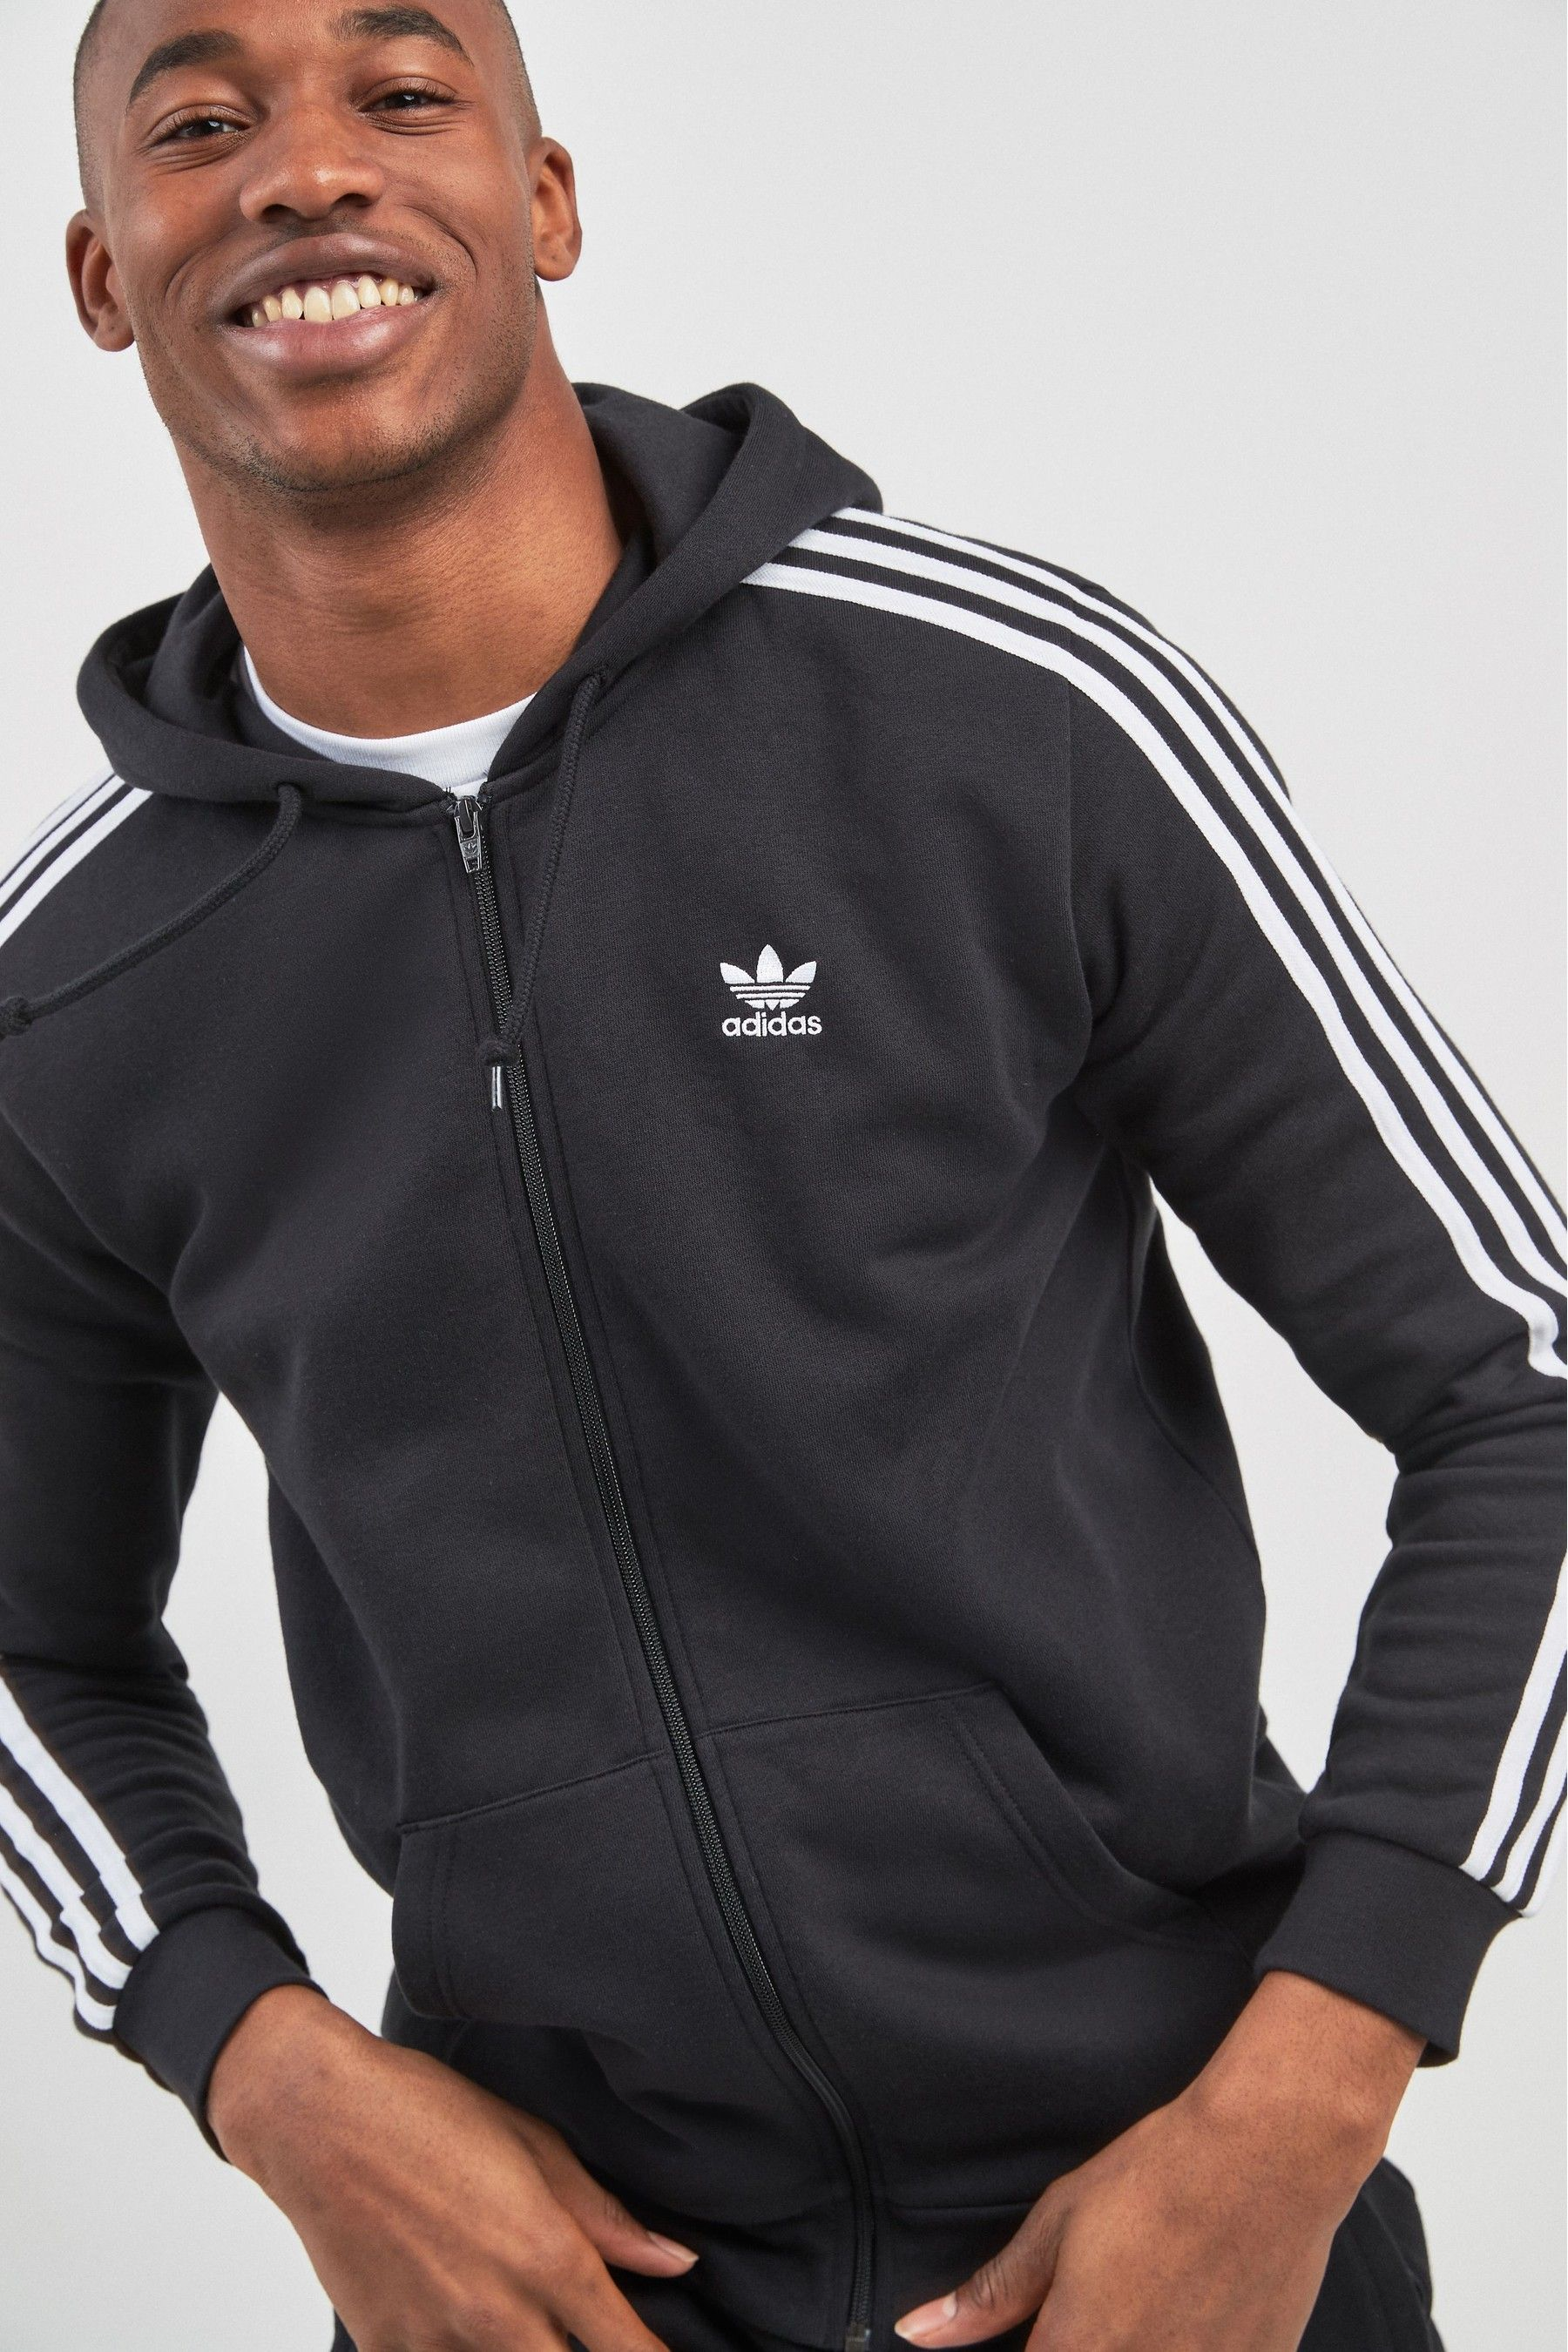 adidas Men's Originals Colorblocked Sweatshirt